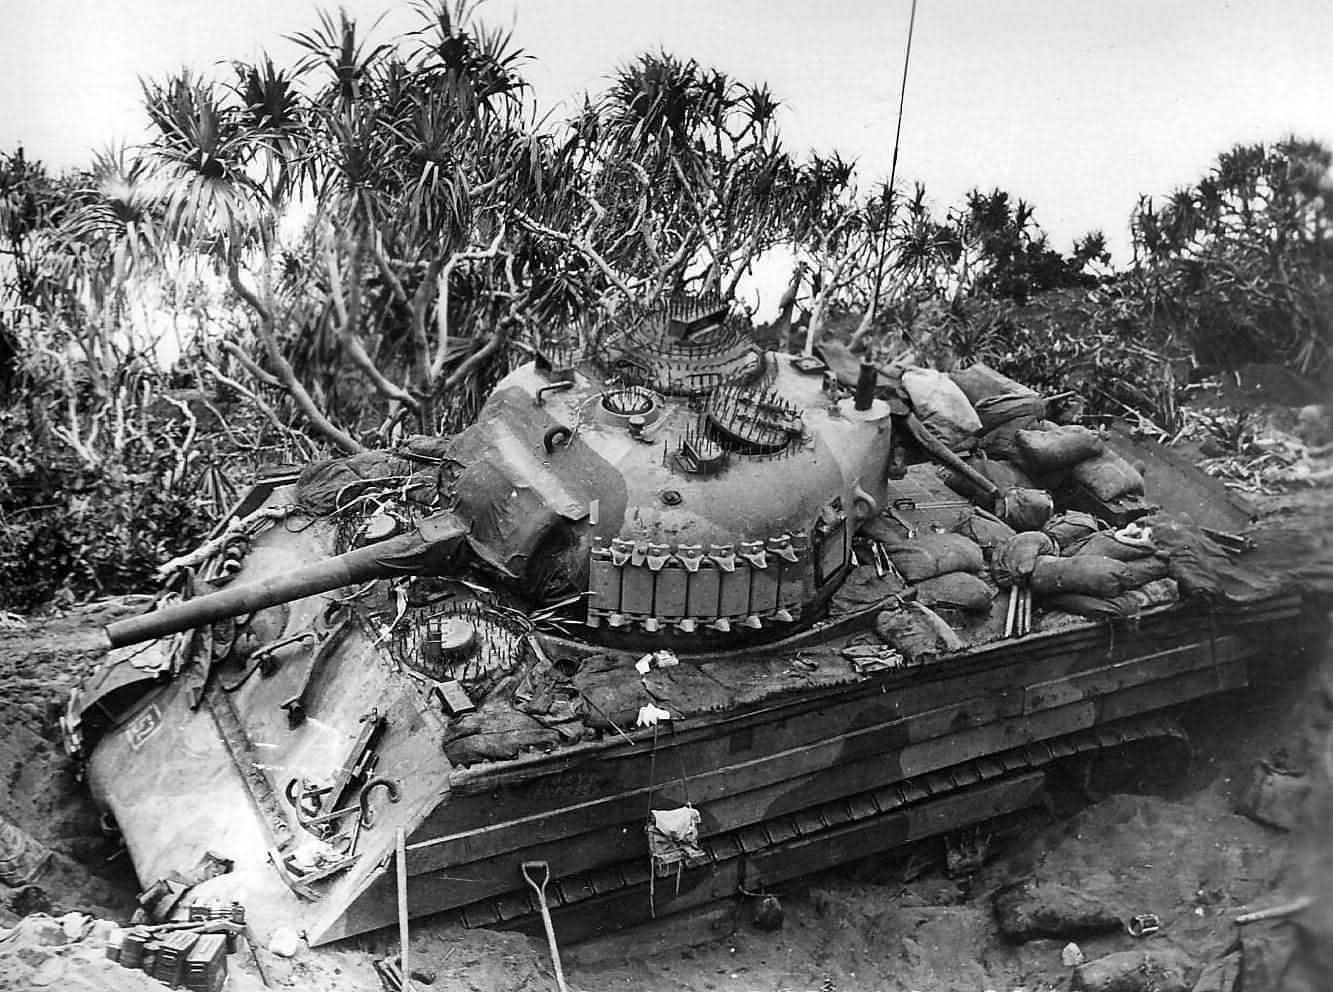 marine_m4a3_sherman_of_the_5th_tank_battalion_in_ditch_iwo_jima